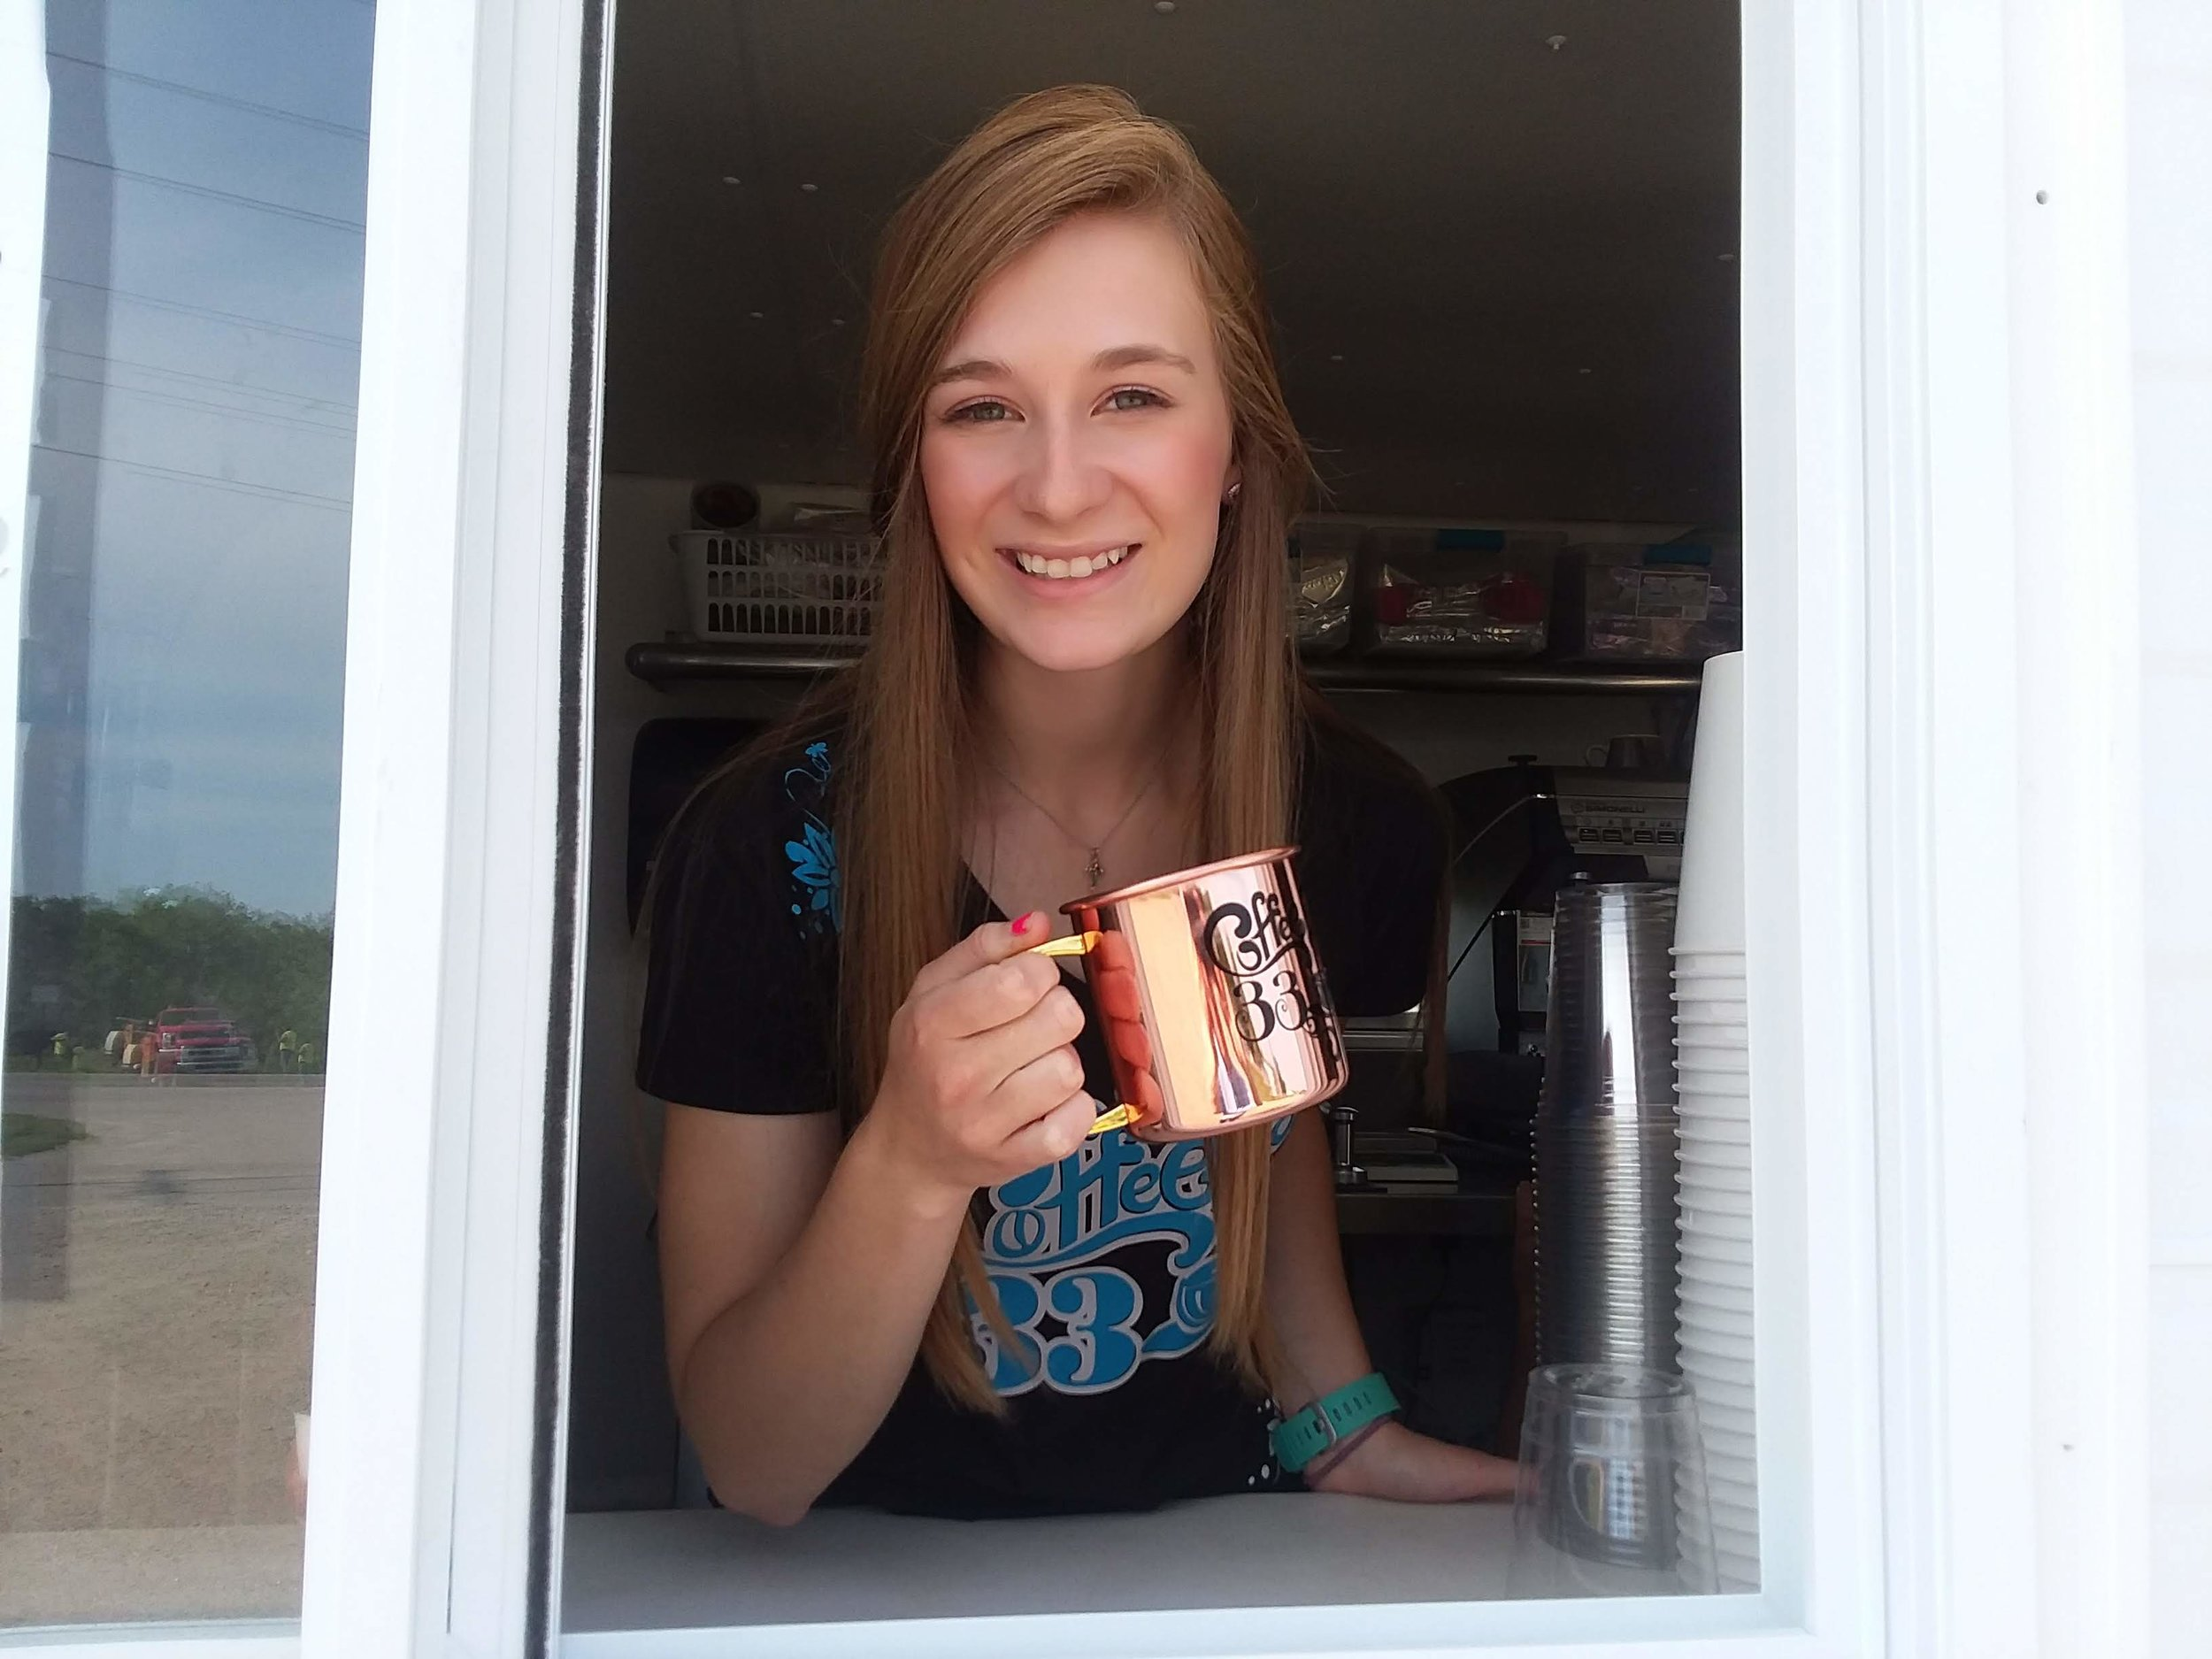 Ashley Ladwig opened her business Coffee 33 in May of this year